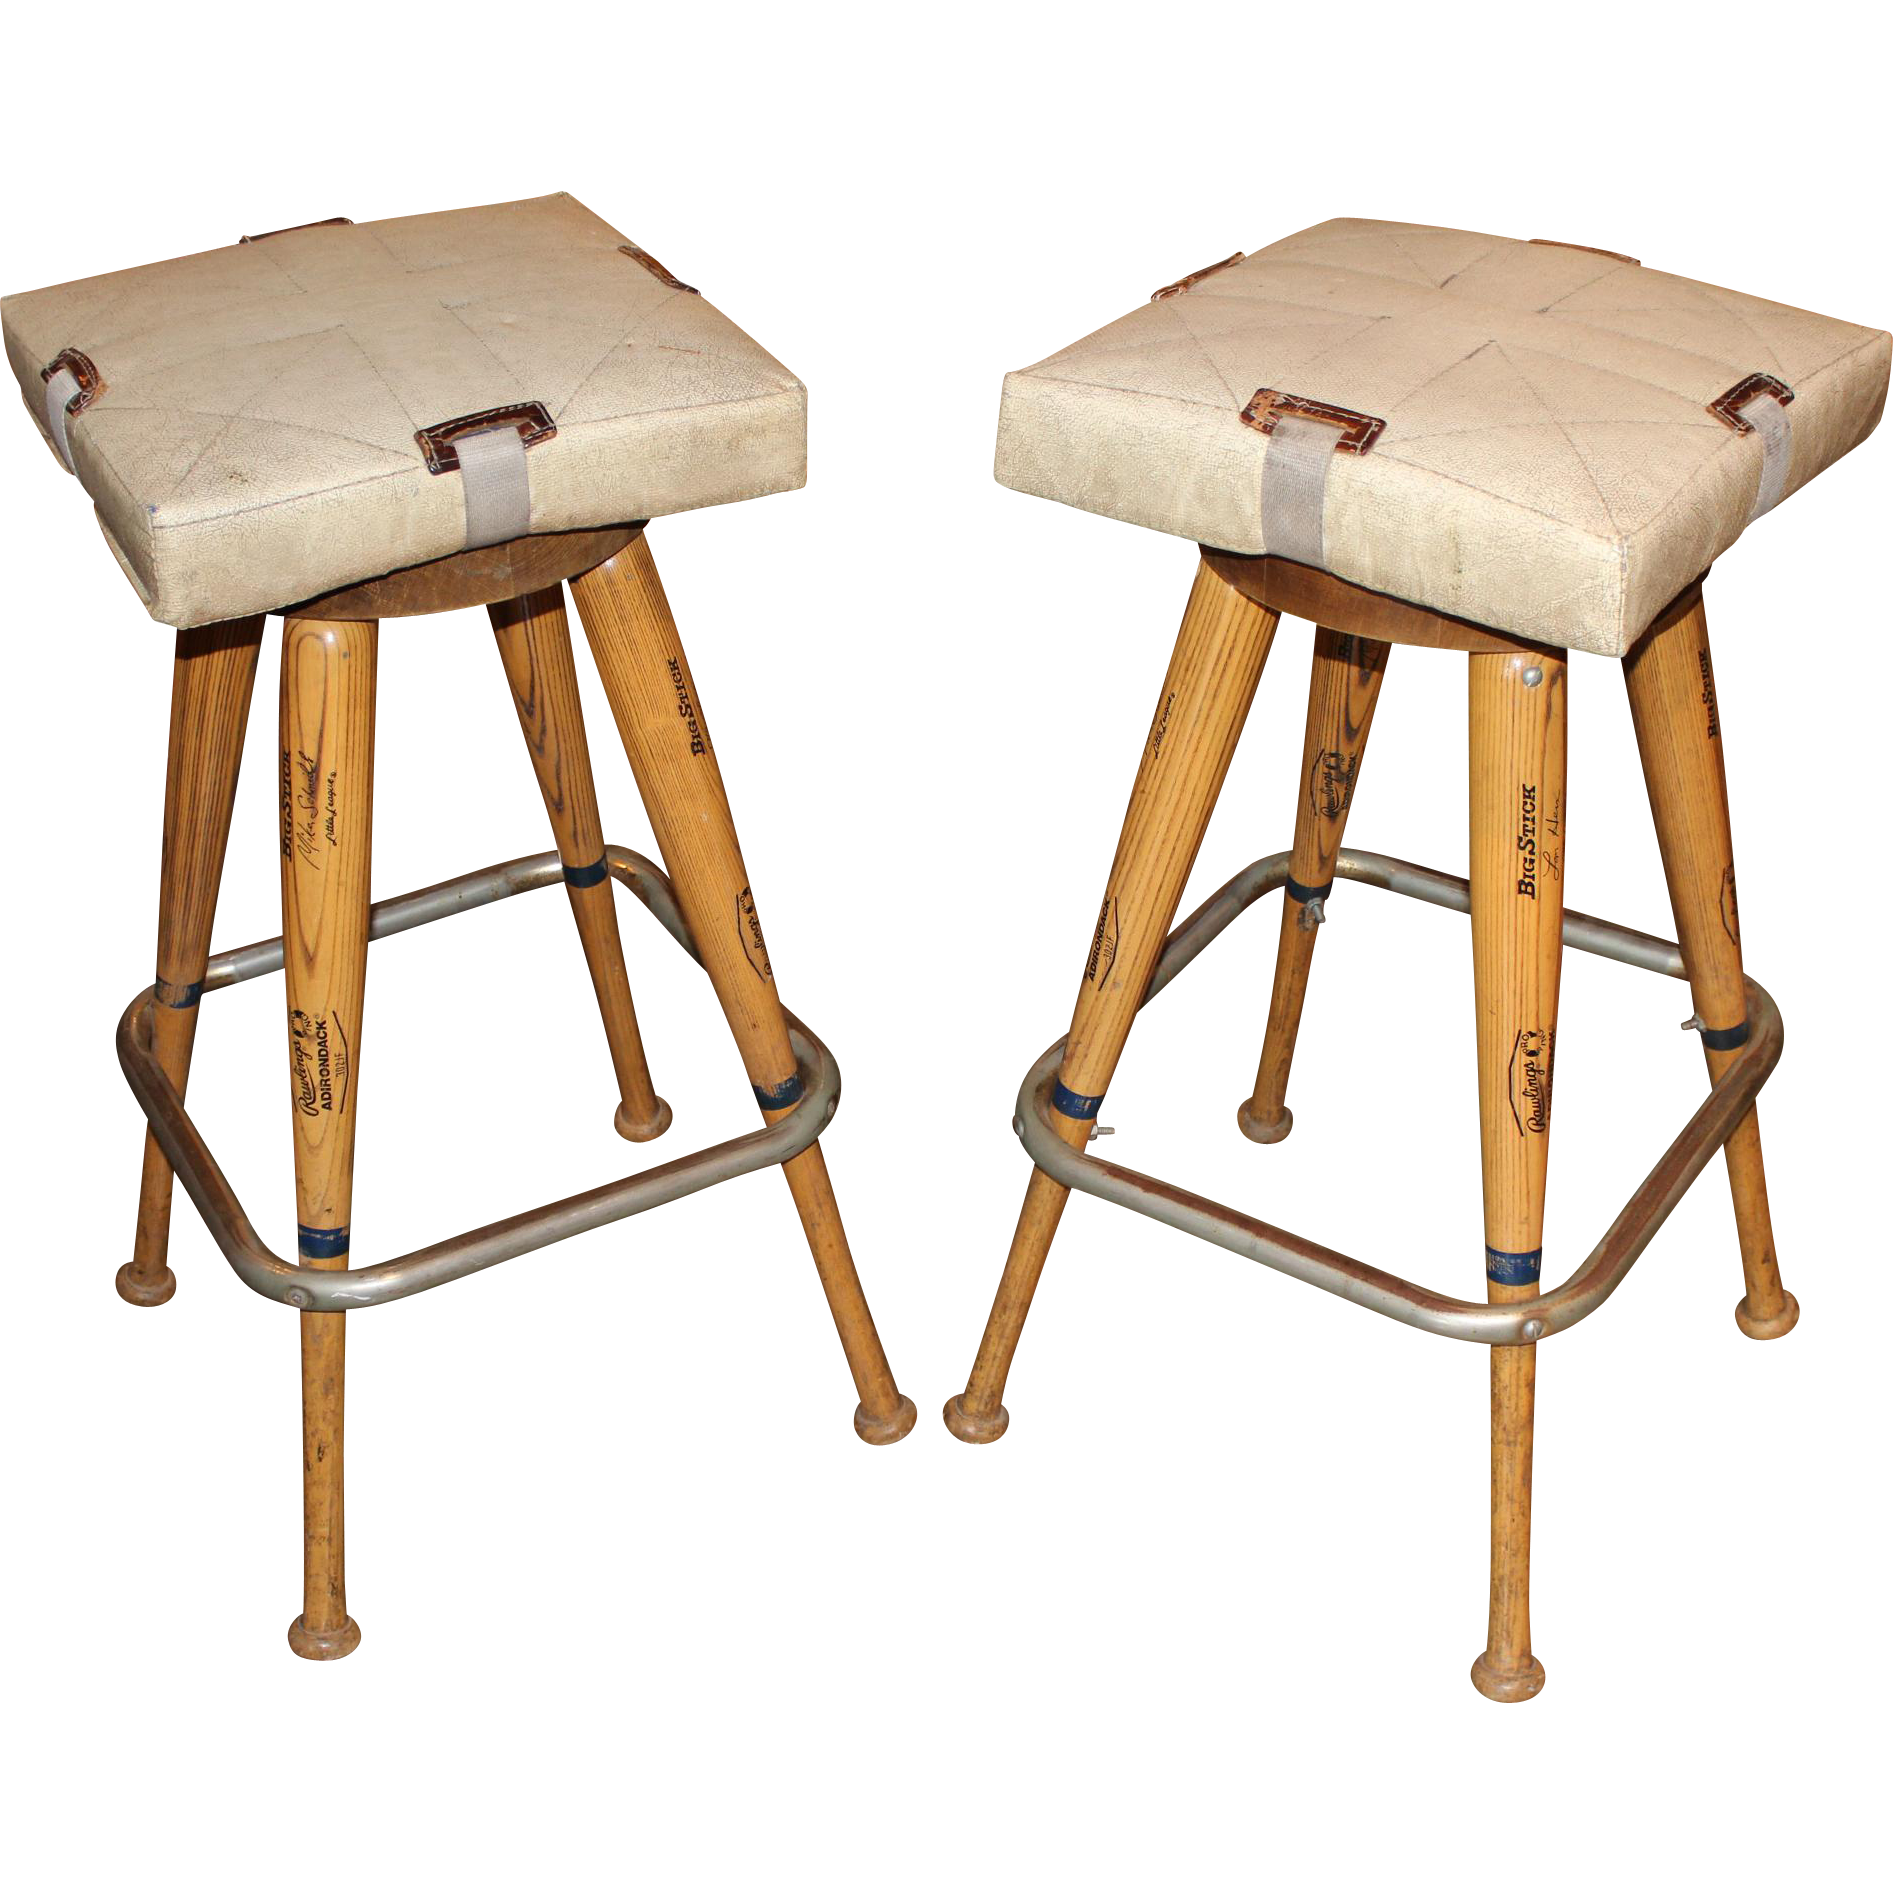 Pair of Custom Baseball Bat Bar Stools with Base Seat  : 50011L from www.rubylane.com size 1893 x 1893 png 2731kB